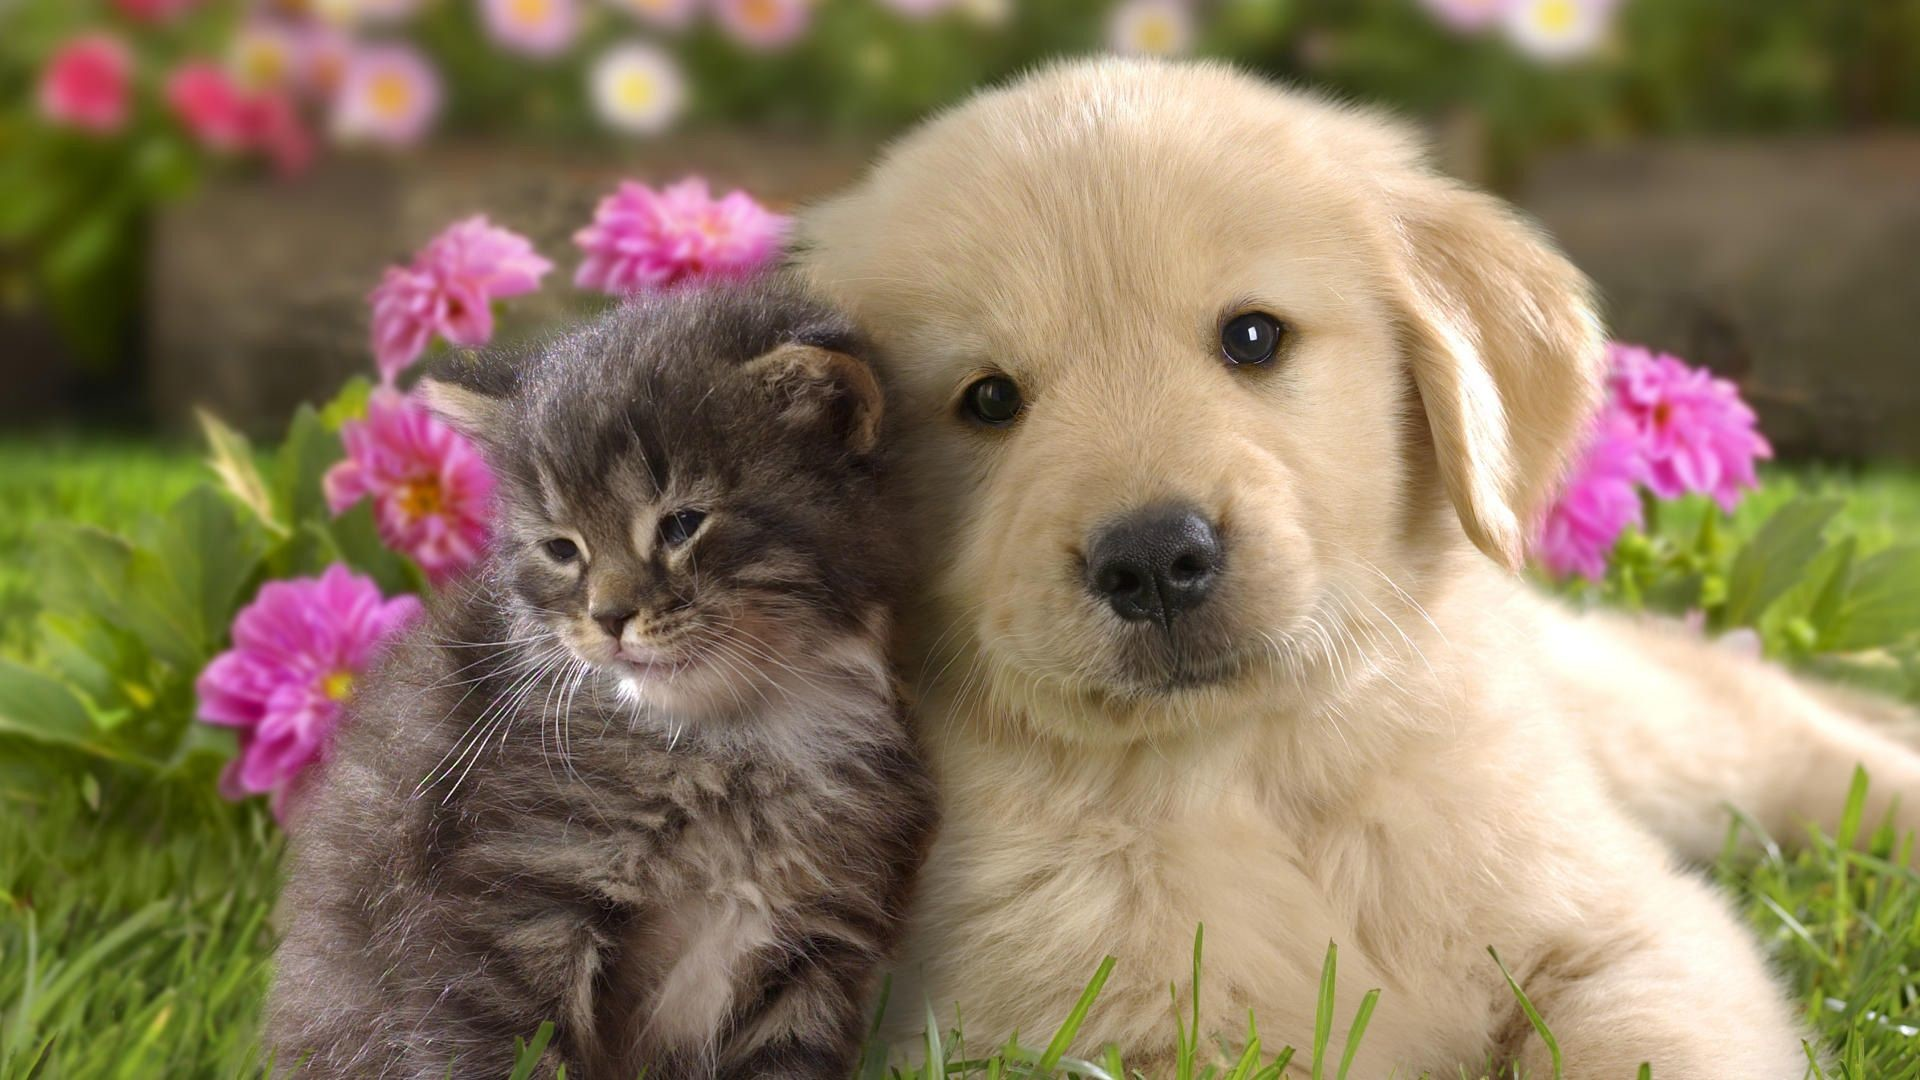 dog wallpapers cute cat and dog wallpaper yorkshire terrier wallpaper .